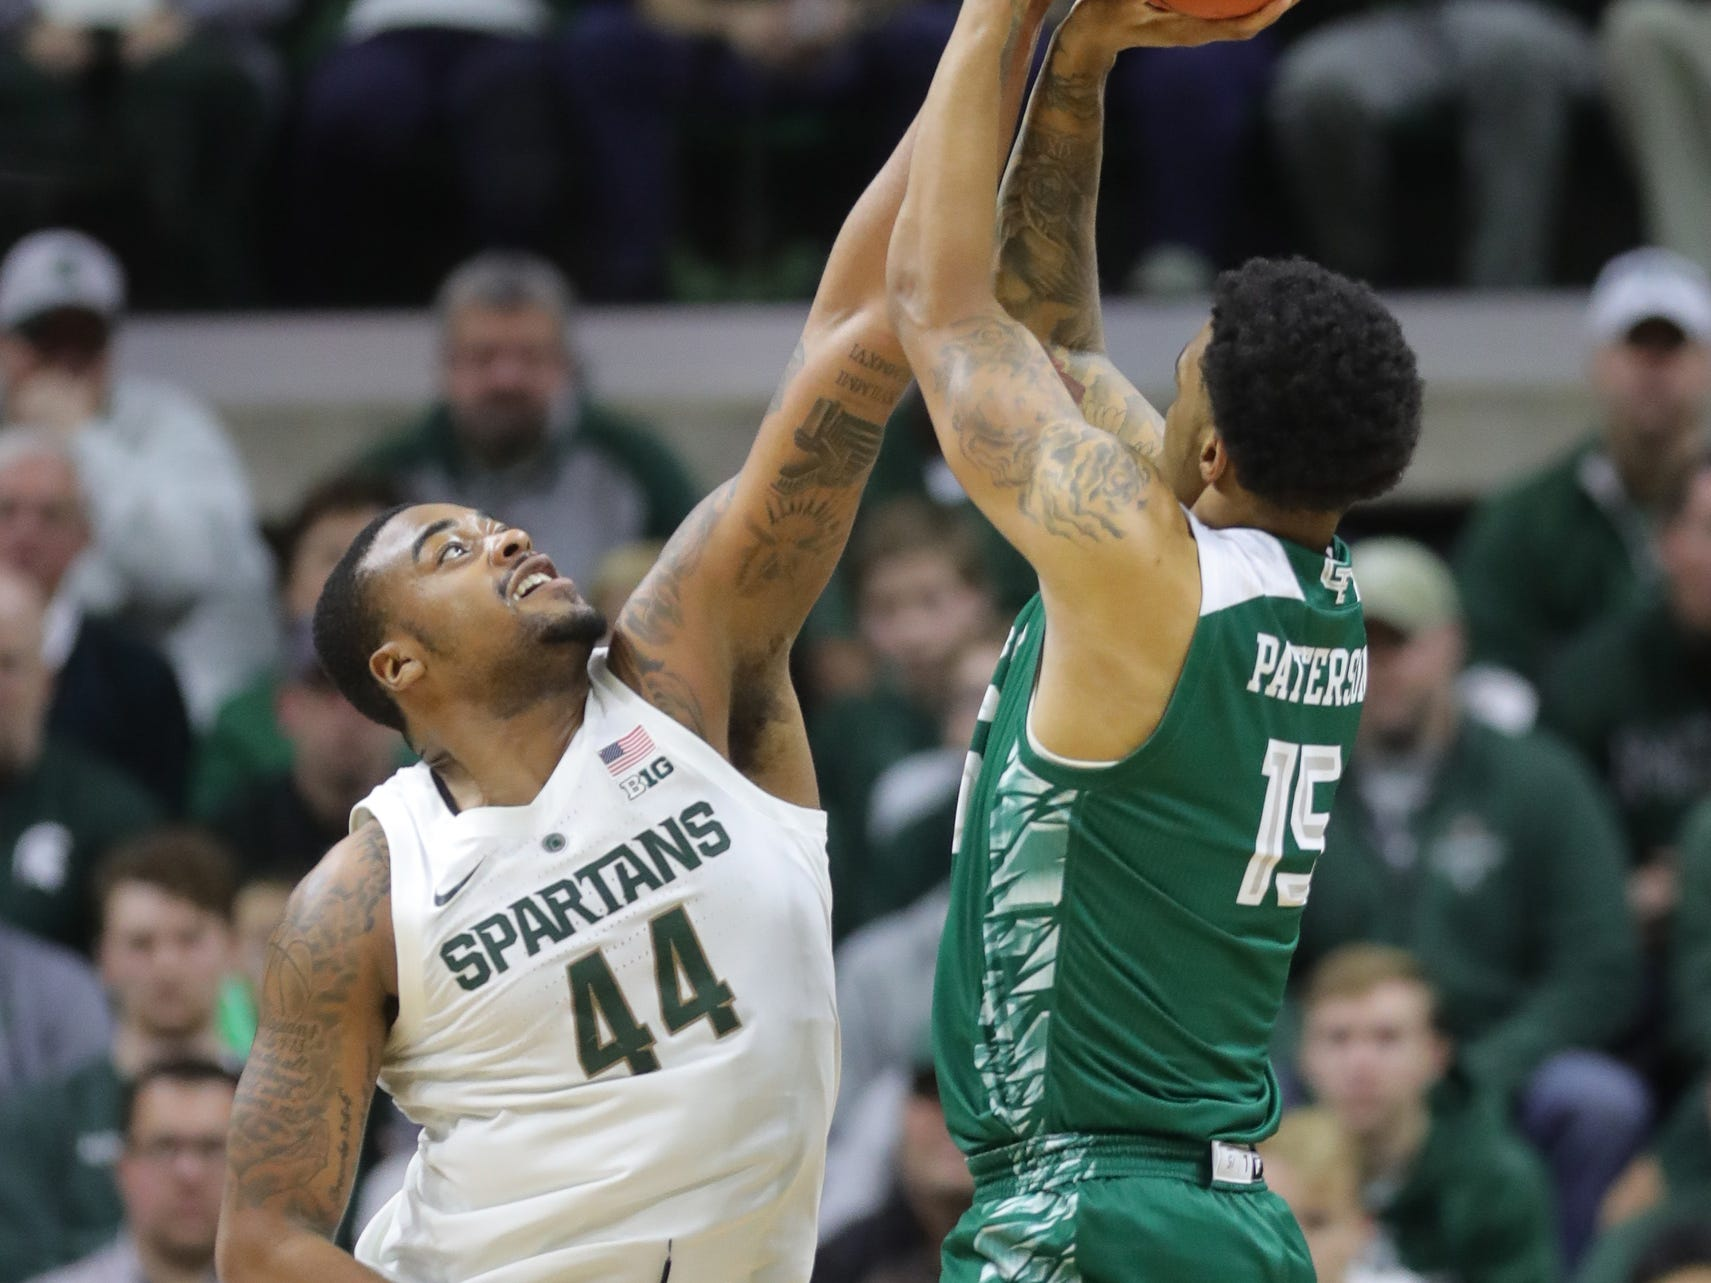 Michigan State forward Nick Ward blocks a shot by Green Bay forward Manny Patterson during the first half Sunday, Dec. 16, 2018 at the Breslin Center in East Lansing.